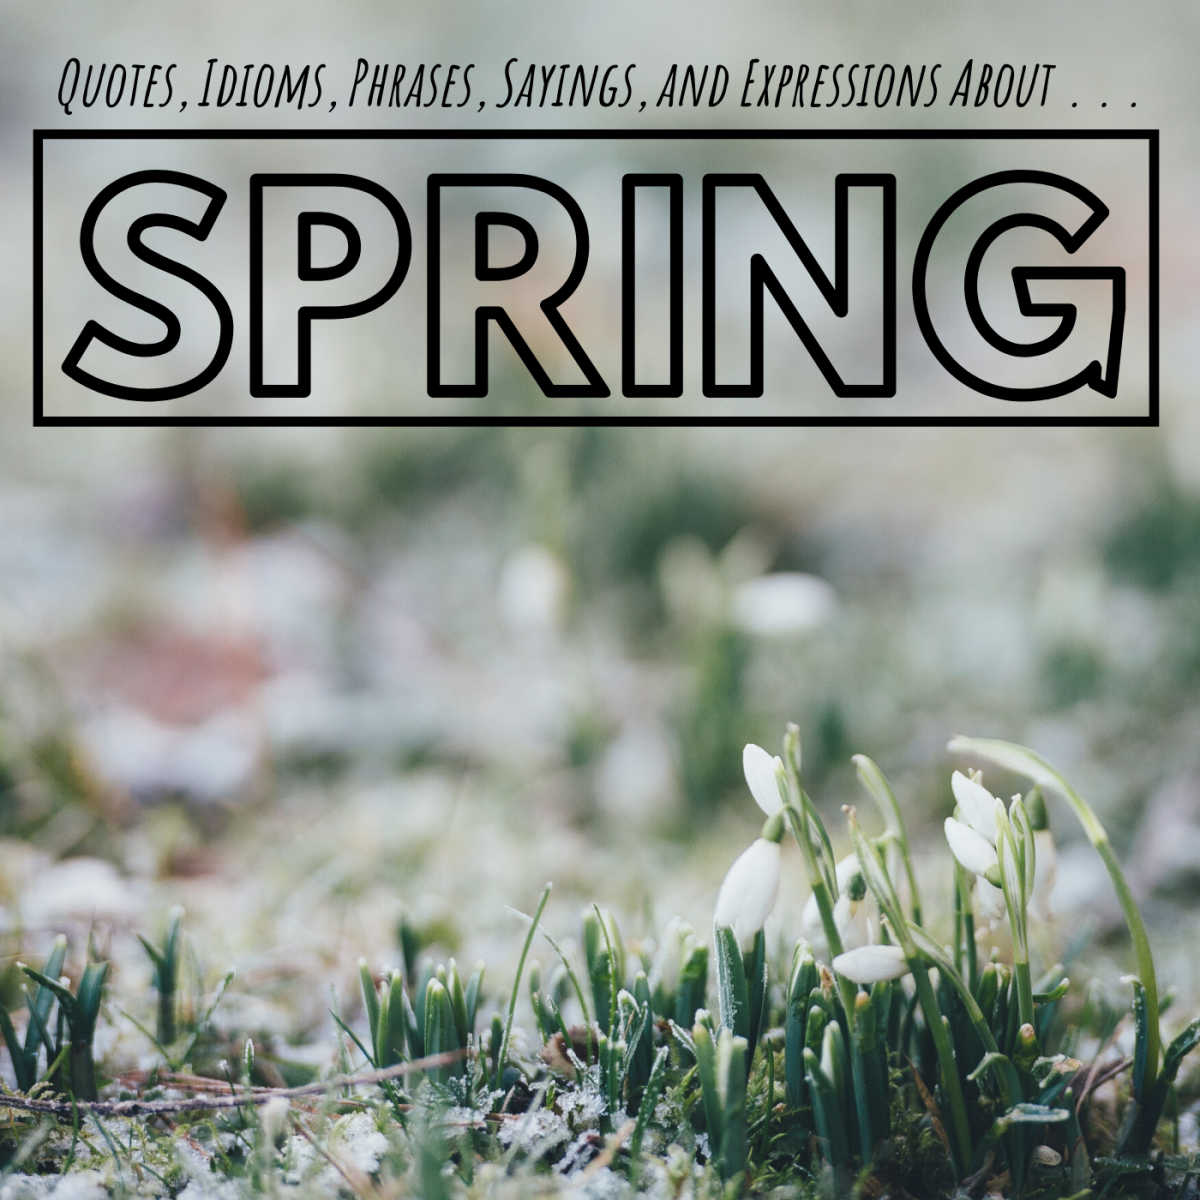 A surprising amount of expressions, idioms, and turns of phrase have been created about the spring season over the years.